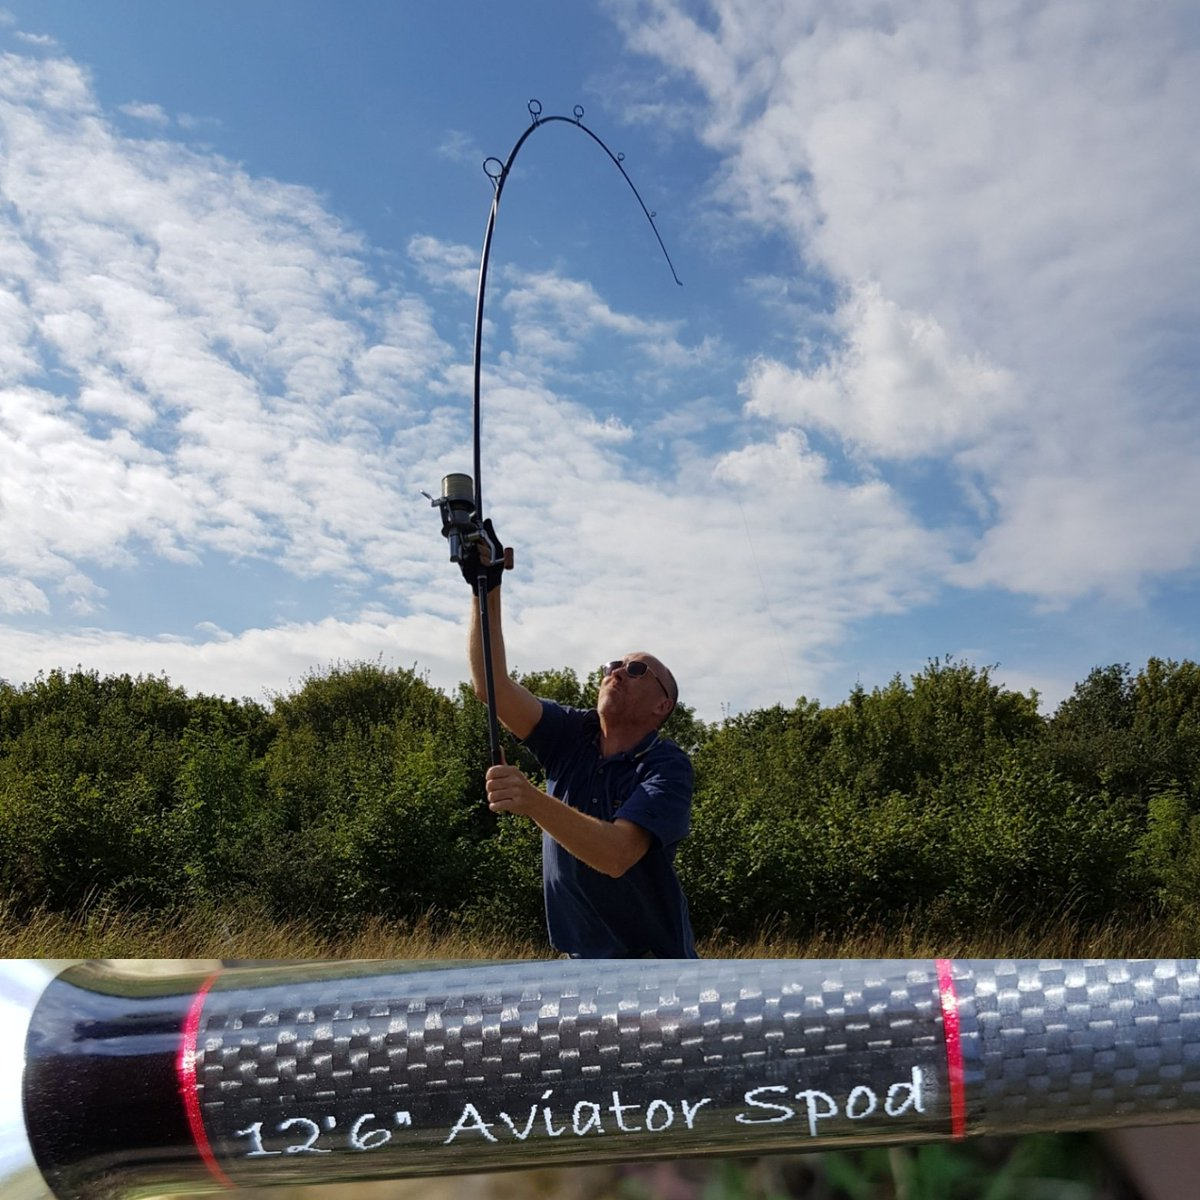 New Harrison Aviator 12ft 6 Spod rod being cast by my client. Really nice rod #carpcasting #carpfish